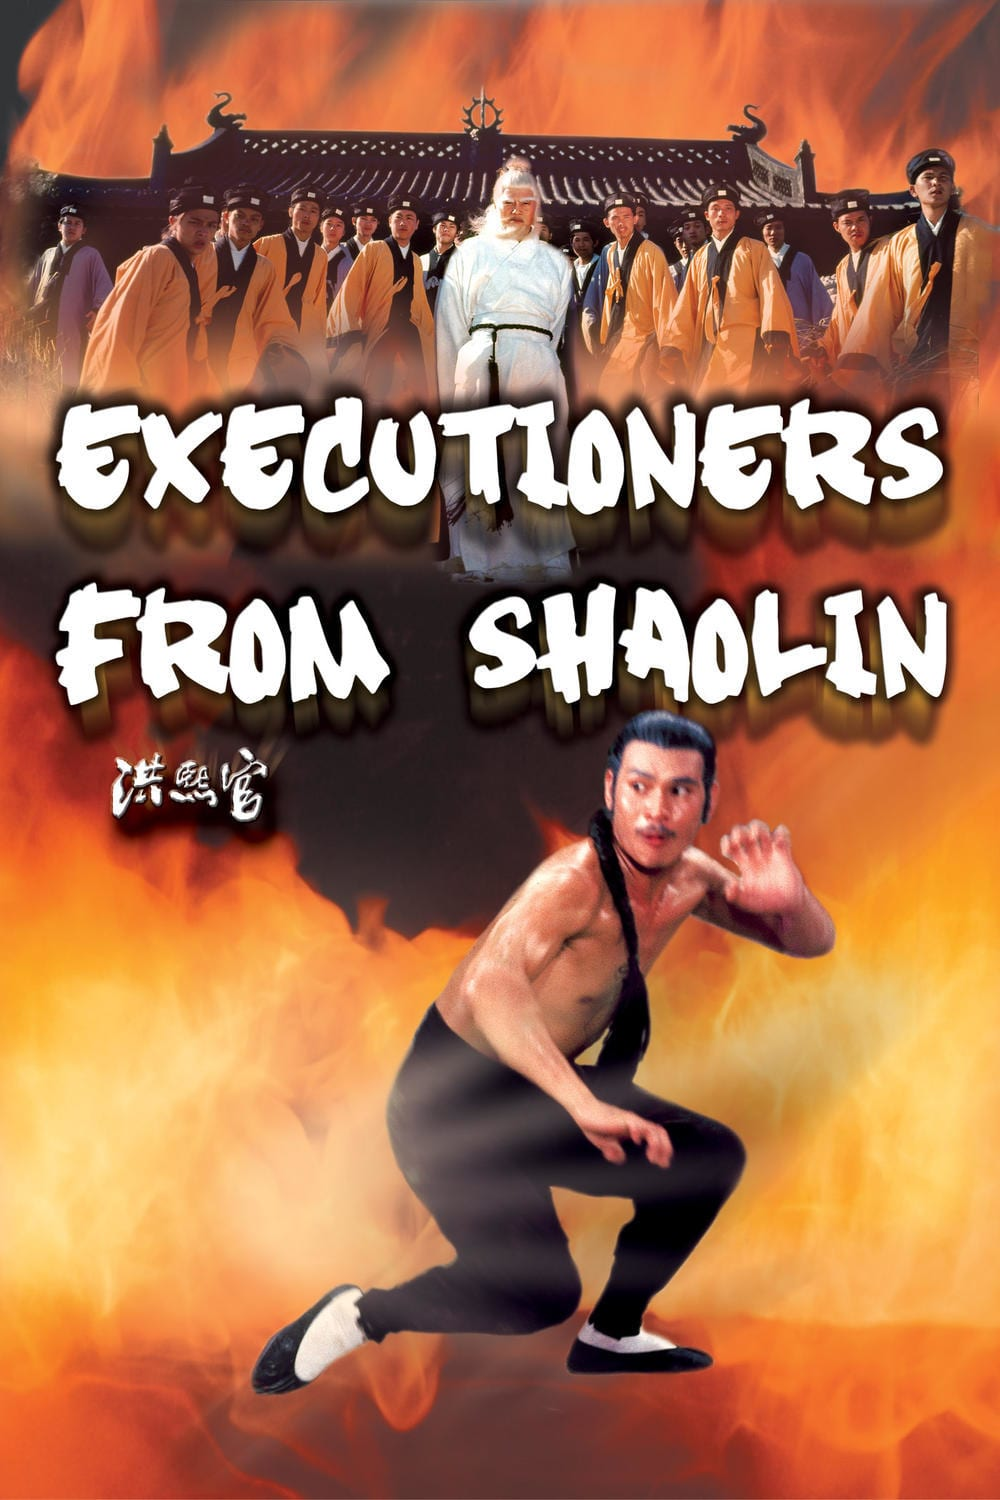 Executioners from Shaolin (1977) DVDRip x264 1GB